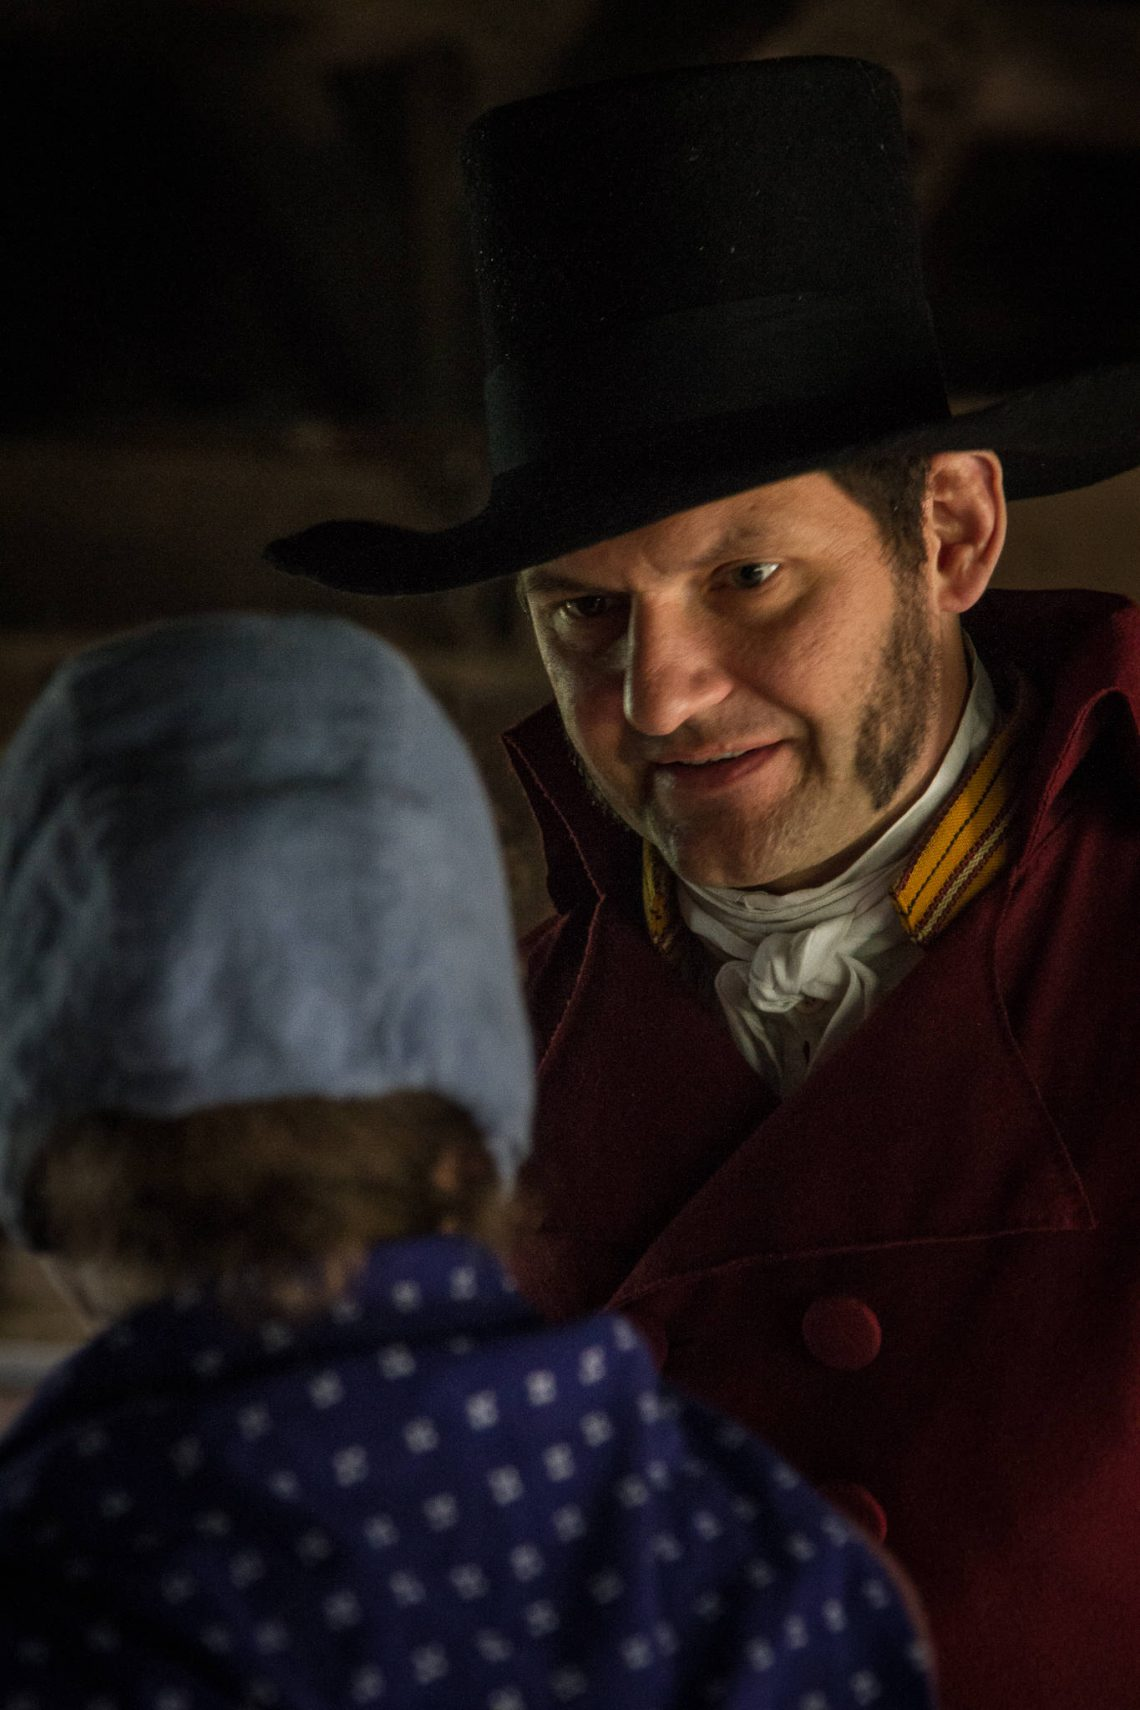 Living History 1813 - The other side of the conversation